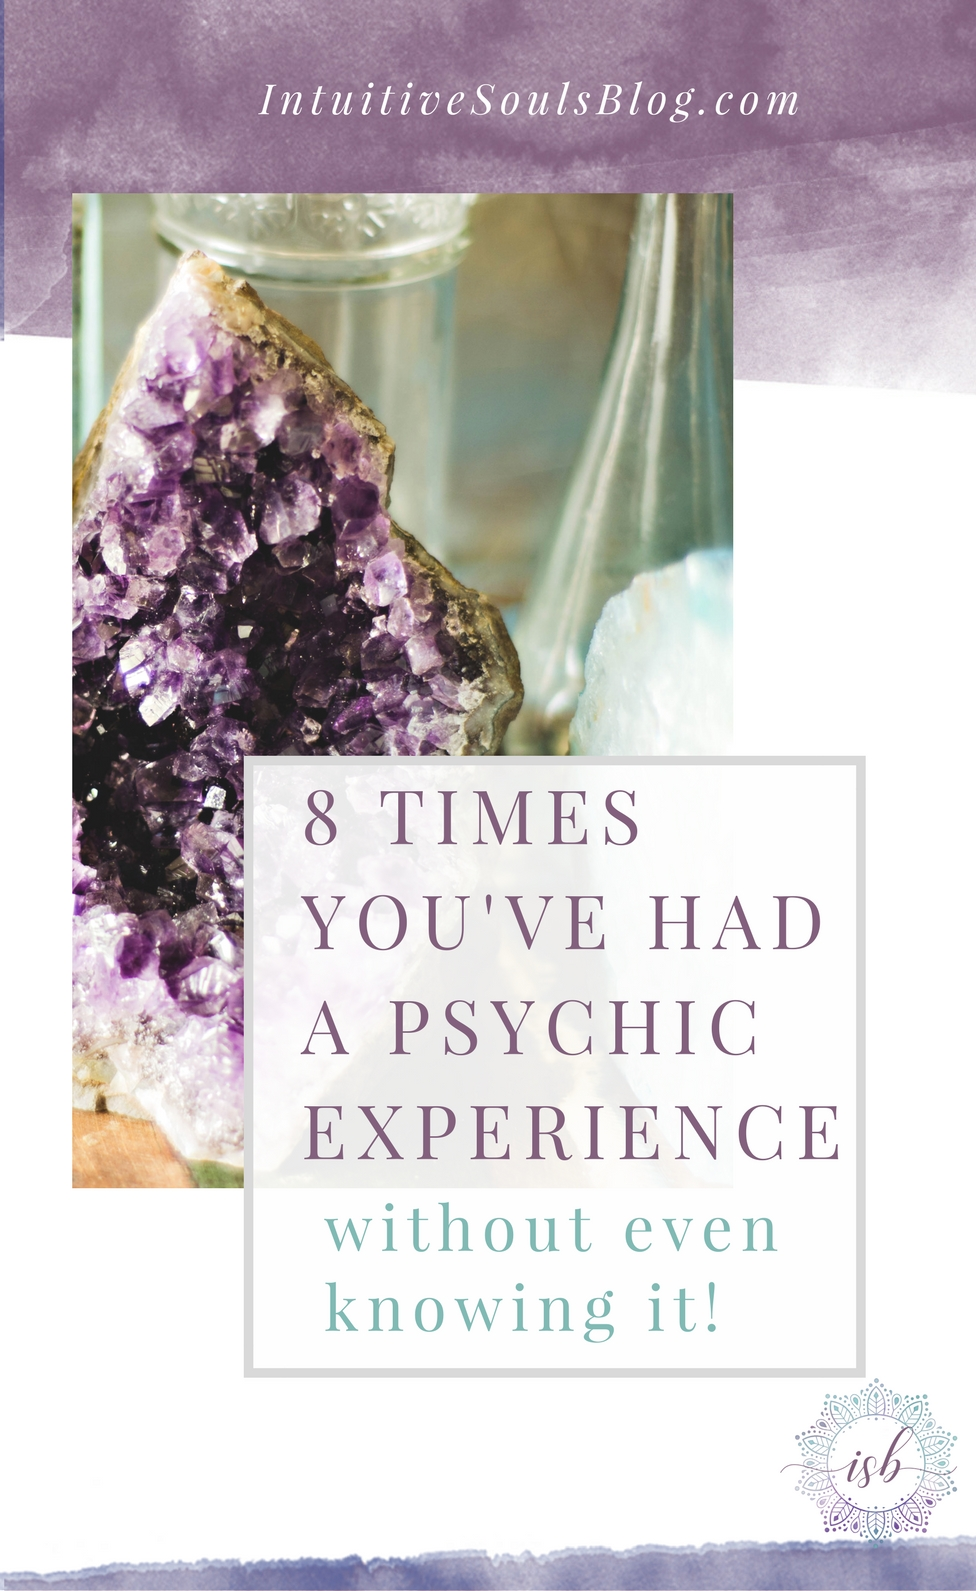 You've probably had a clairvoyant or had a psychic experience without even knowing it. Ask yourself these 8 questions to find out for sure (especially #6)!